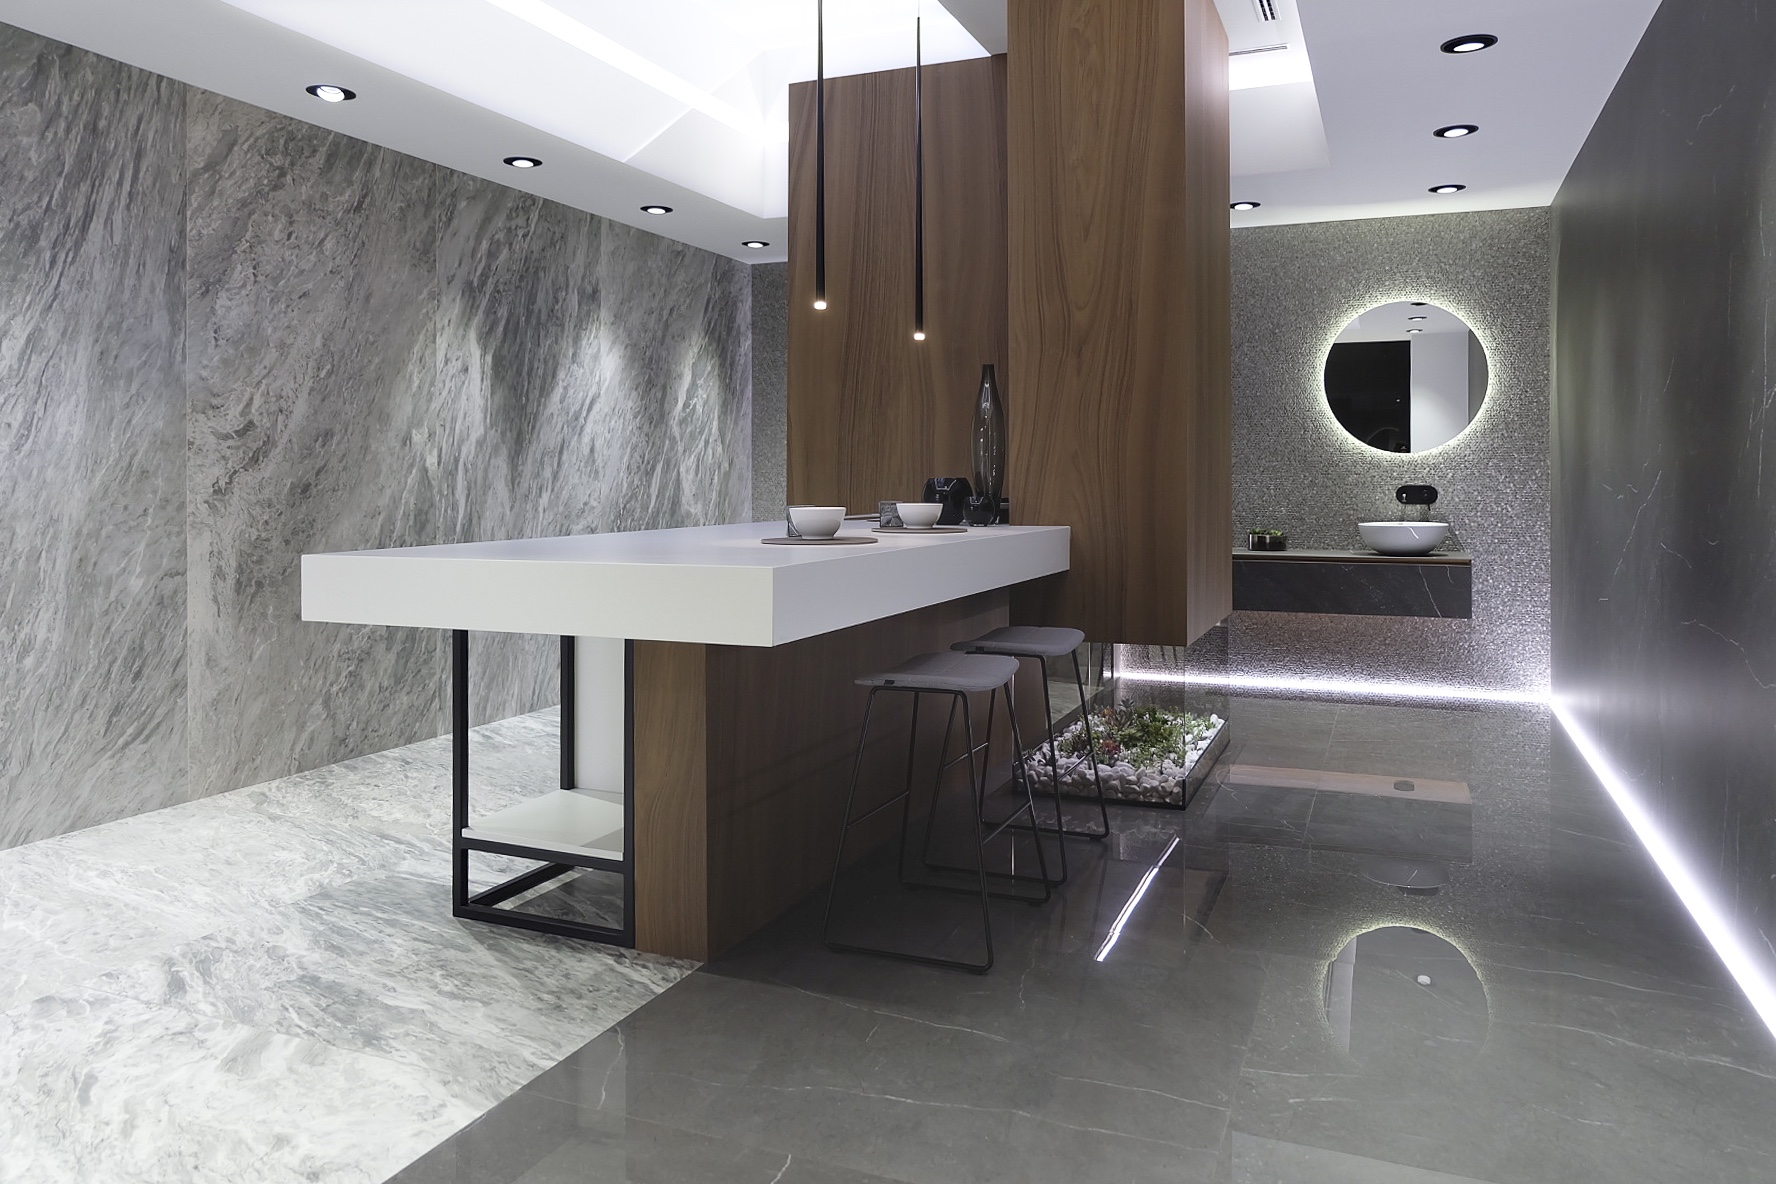 Premium Kitchen at Cersaie I